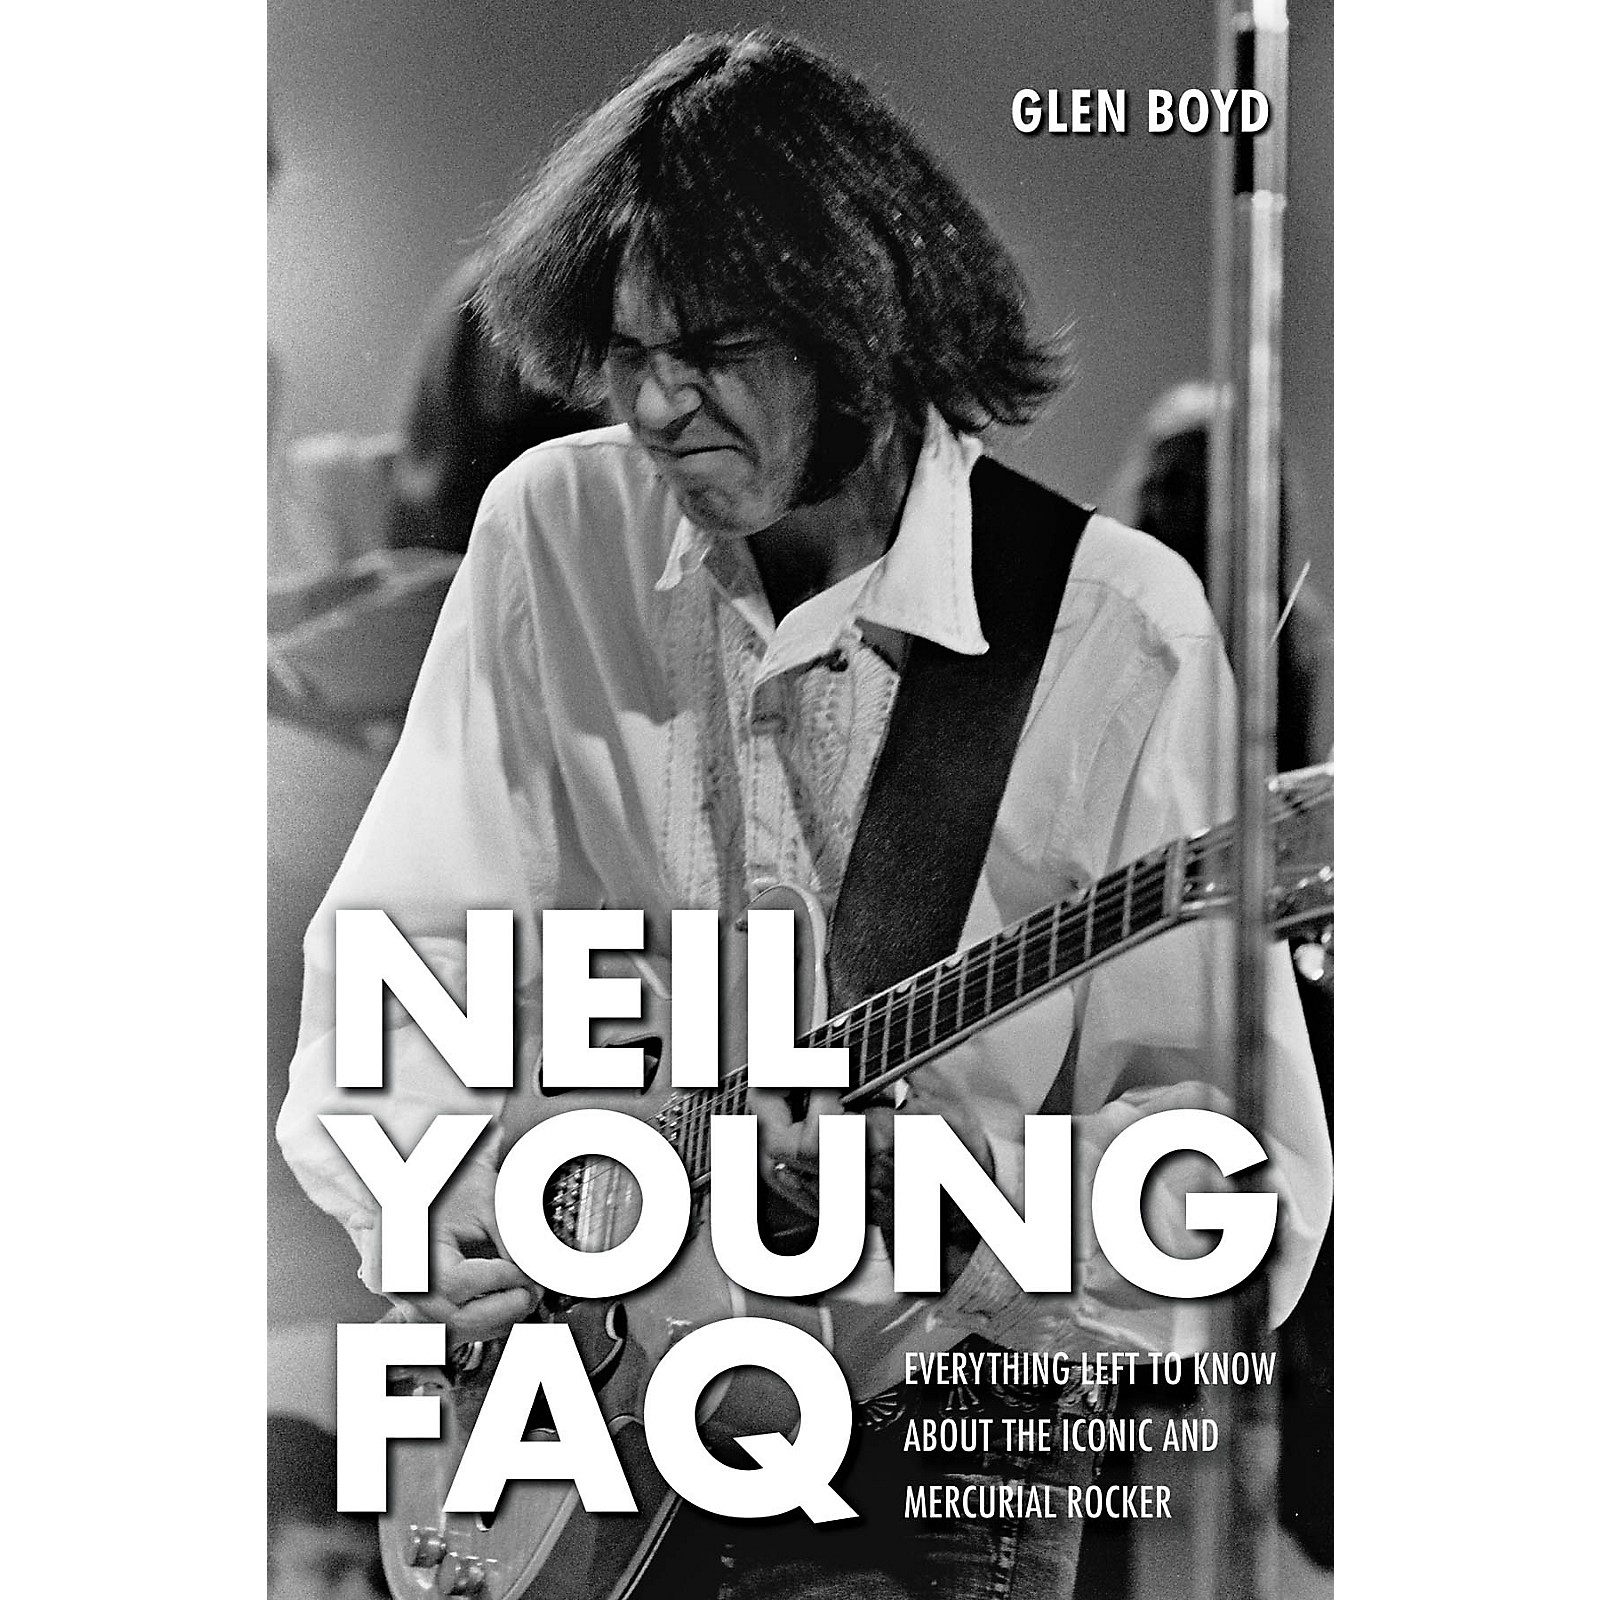 Hal Leonard Neil Young FAQ - Everything Left to Know About the Iconic and Mercurial Rocker Book